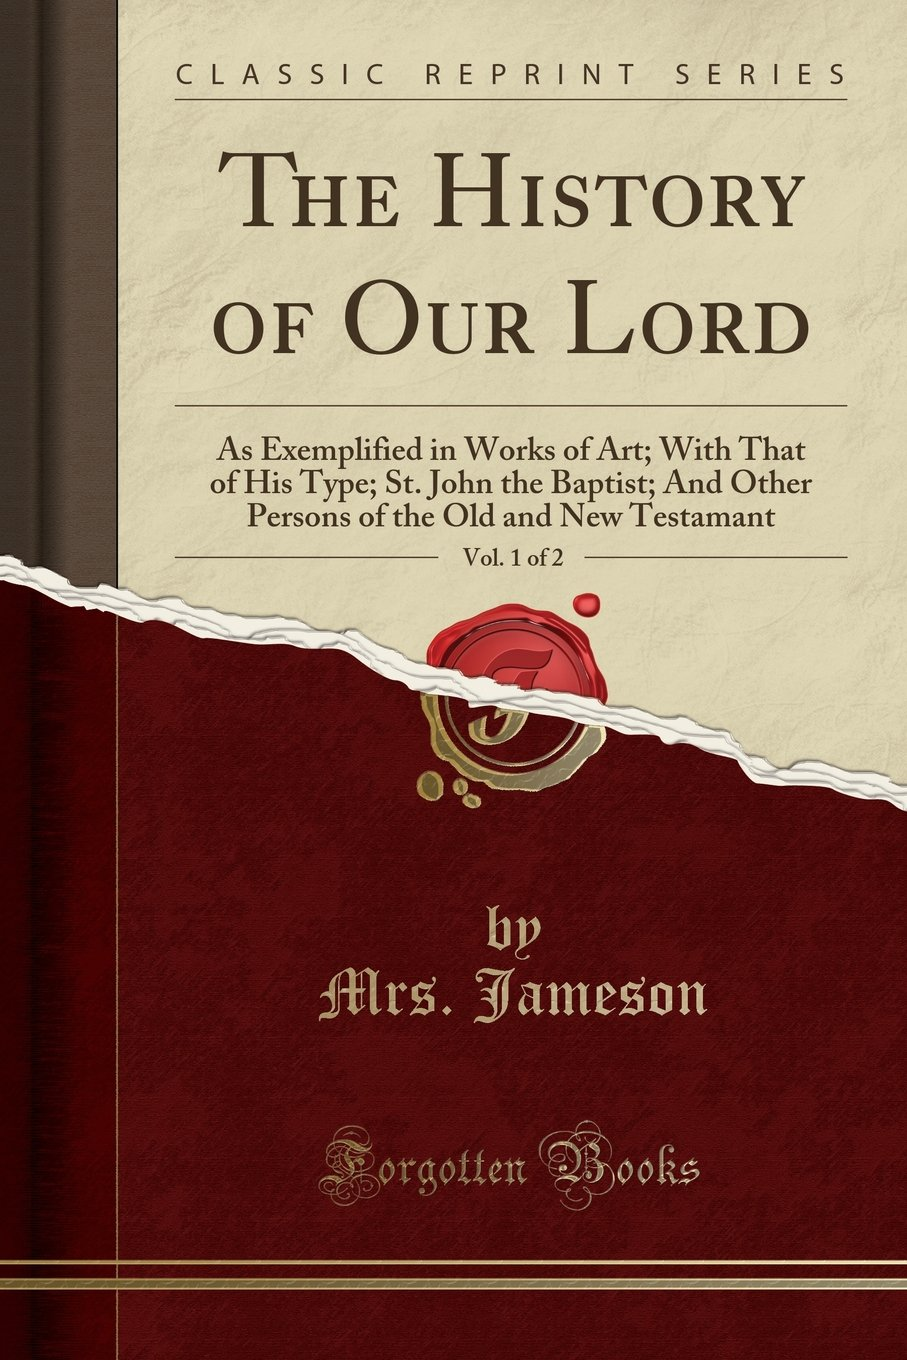 Download The History of Our Lord, Vol. 1 of 2: As Exemplified in Works of Art; With That of His Type; St. John the Baptist; And Other Persons of the Old and New Testamant (Classic Reprint) pdf epub